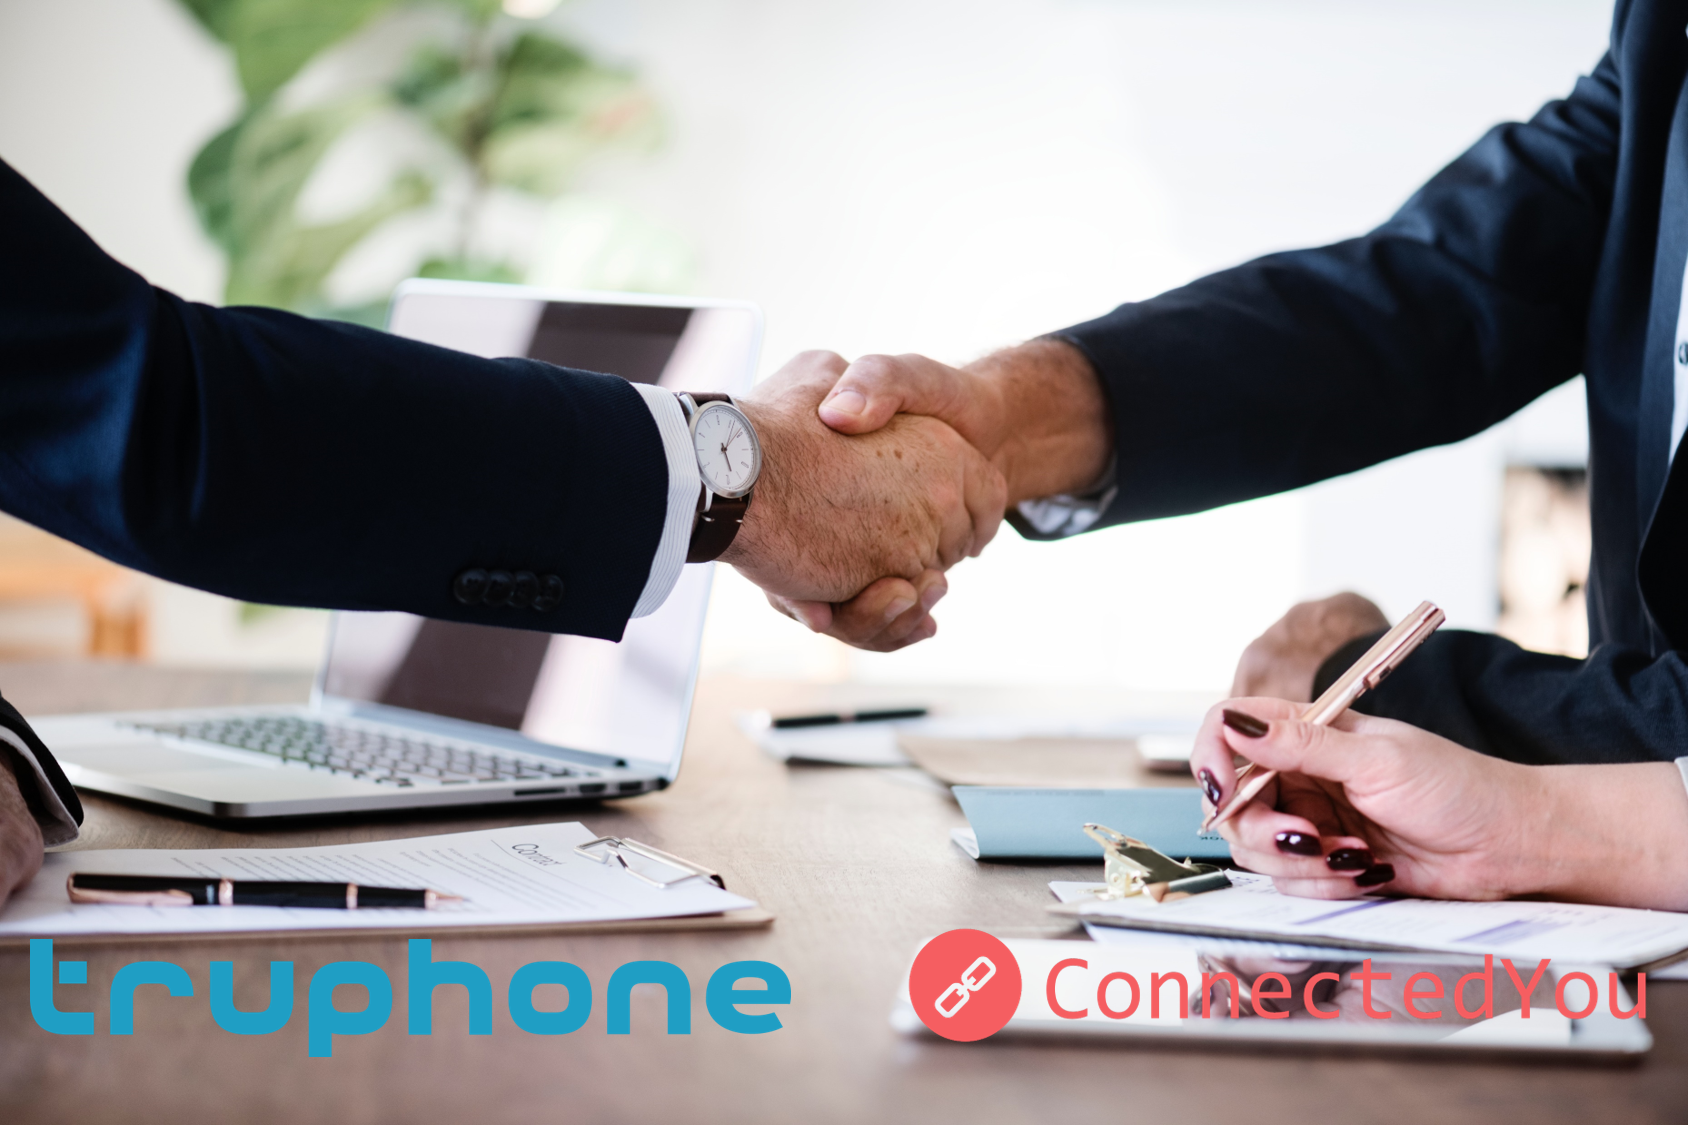 ConnectedYou and Truphone announce partnership to deliver a unique and global IoT service ecosystem